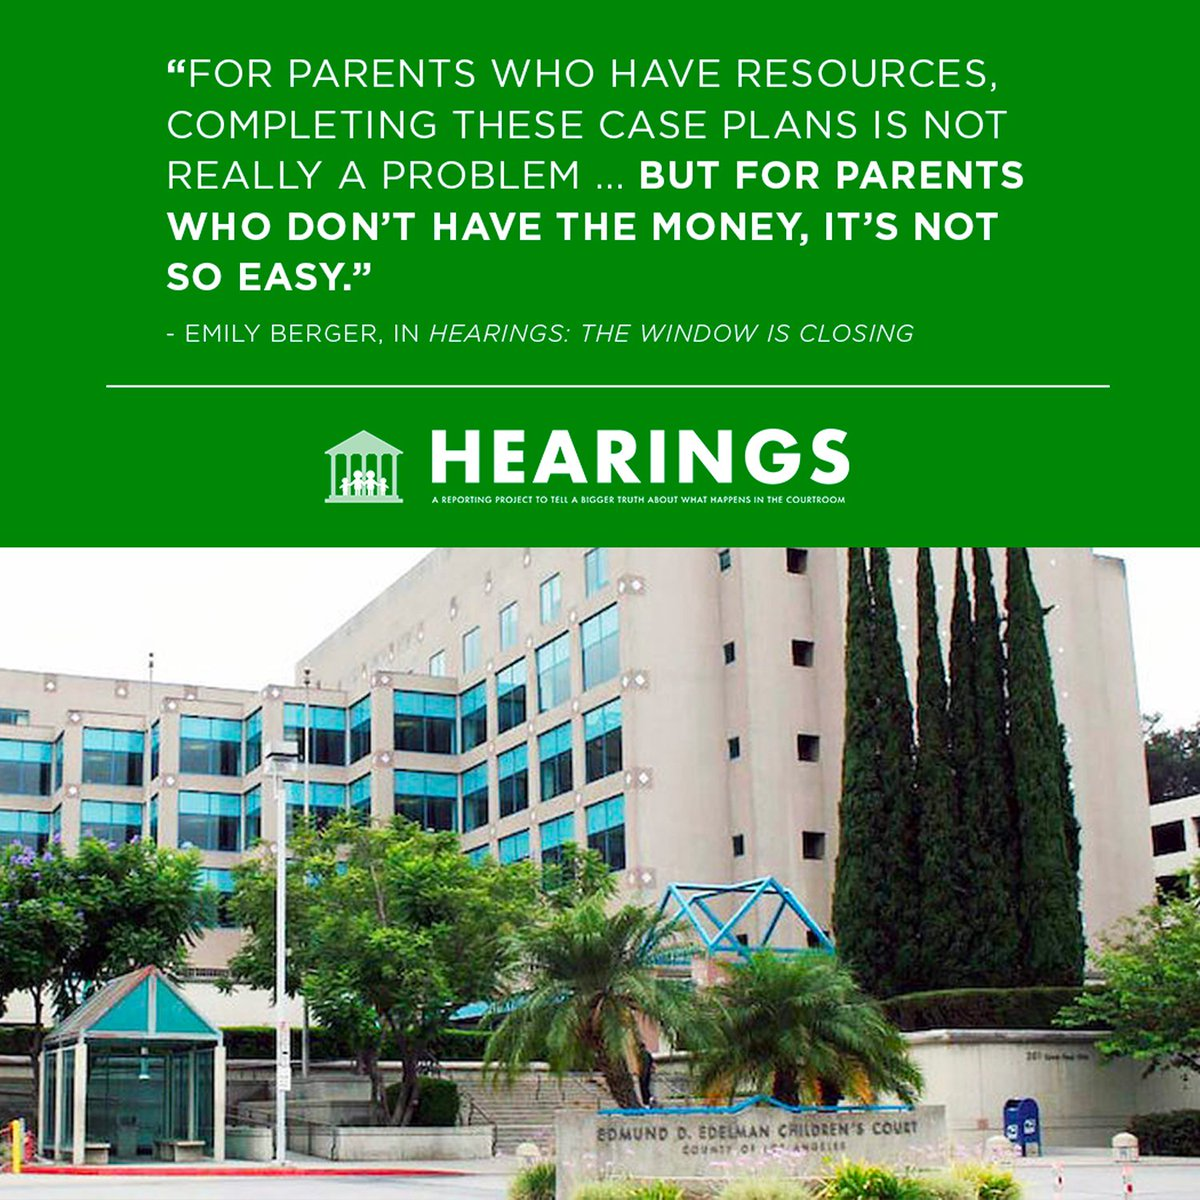 "test Twitter Media - ""Hearings"" is now taking us to LA - the court hasn't terminated the rights of this mother but it has stopped making an effort to reunify her with her kids. https://t.co/gKMfzhlDoi @ChronicleSC #childwelfare #LA #courtrooms https://t.co/9bl1t99Ajr"